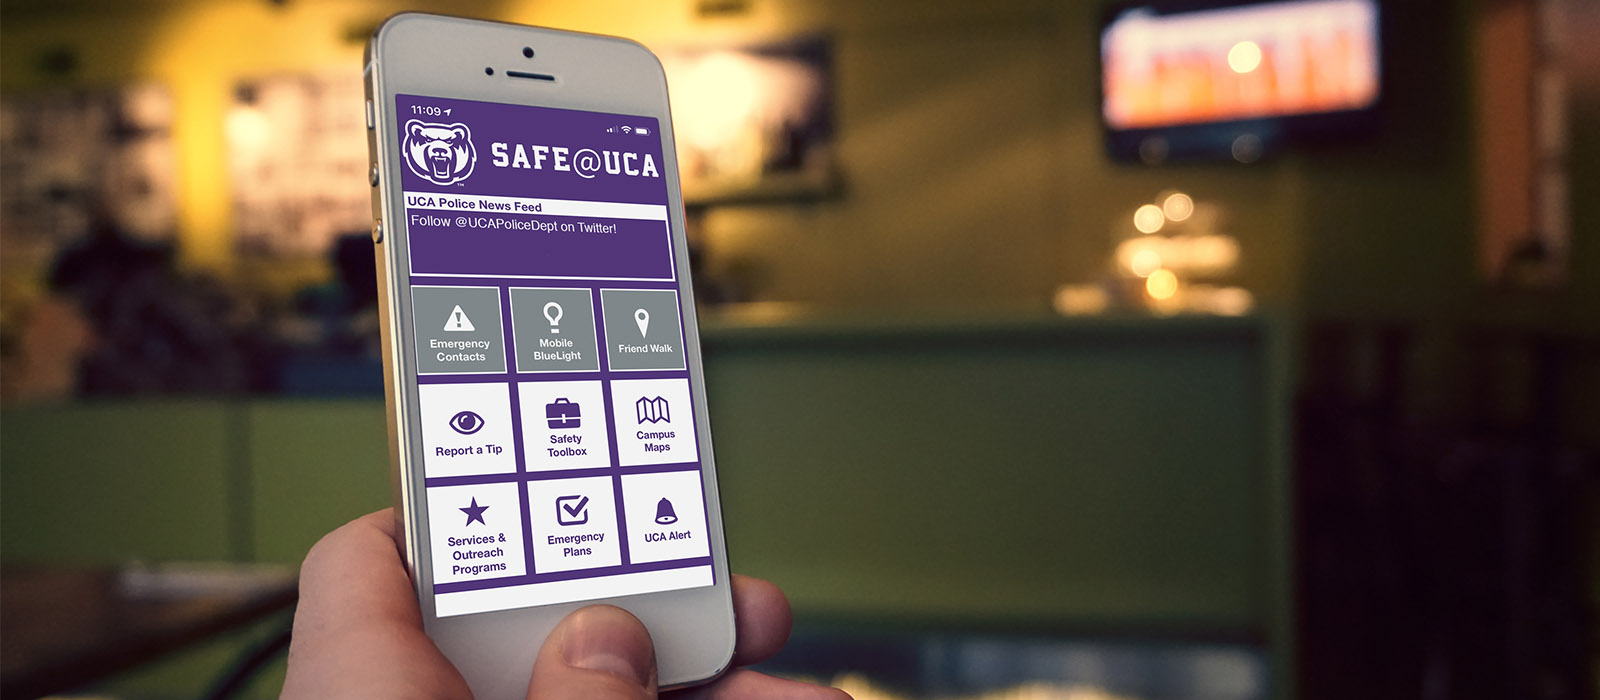 Download the Safe@UCA App